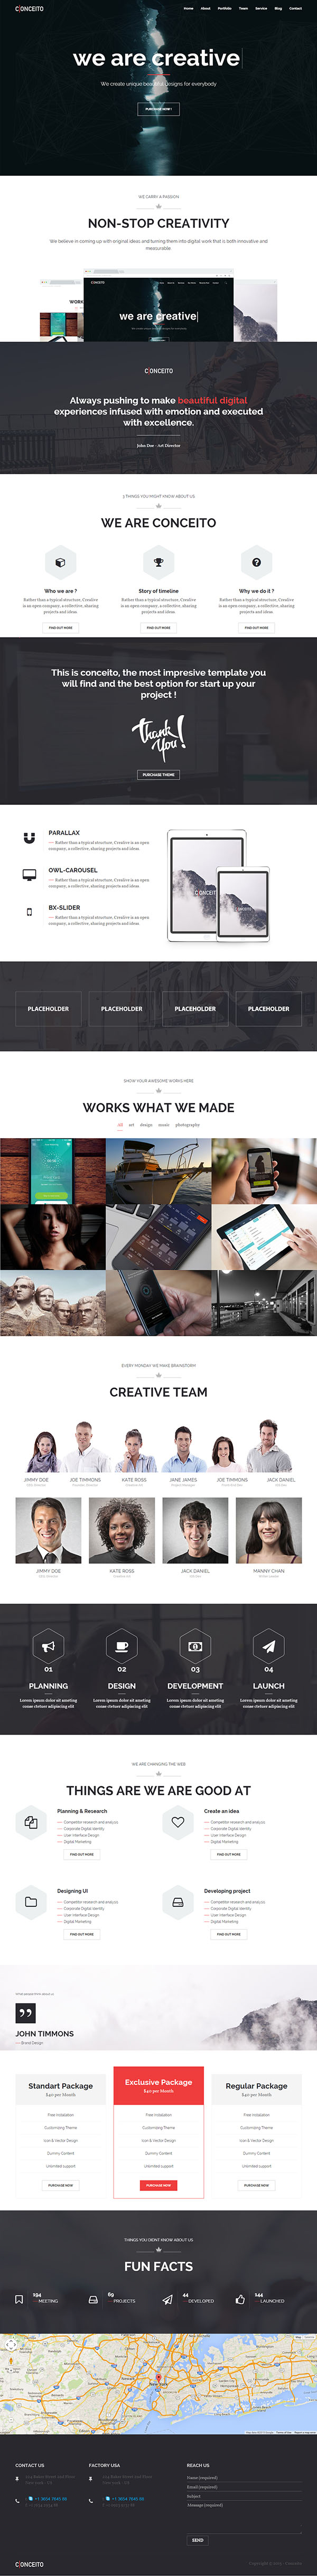 Conceito - Creative One Page Parallax WP Theme